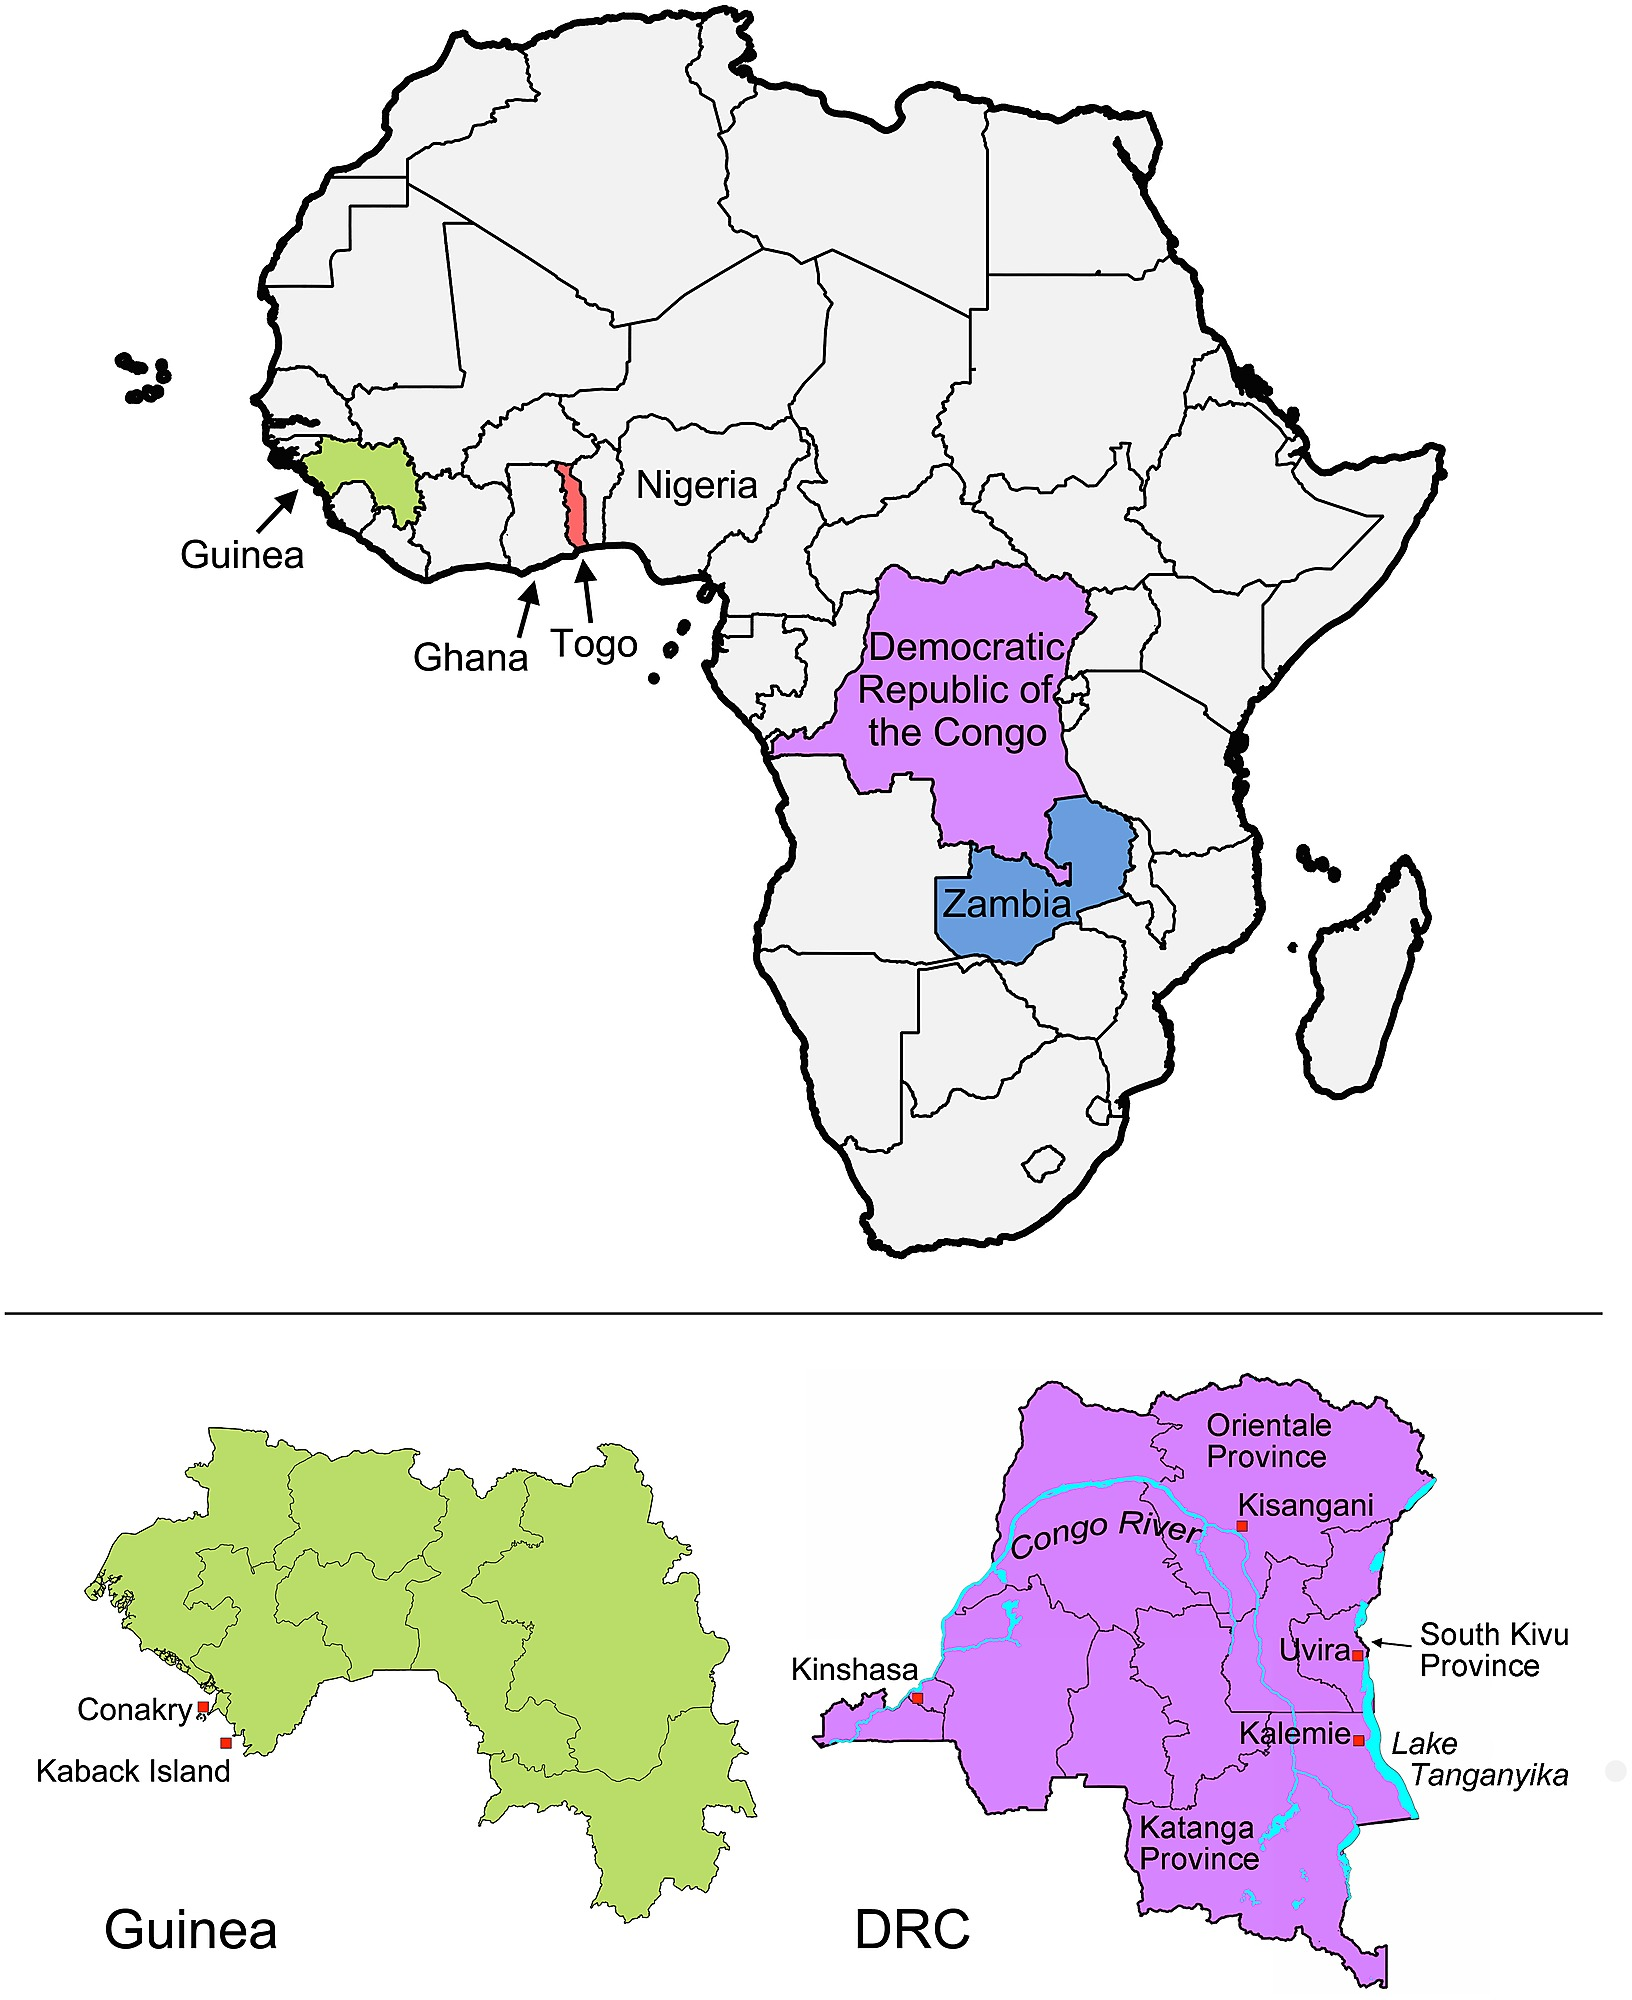 Map Of Africa Congo River.Map Of African Countries Implicated In Study